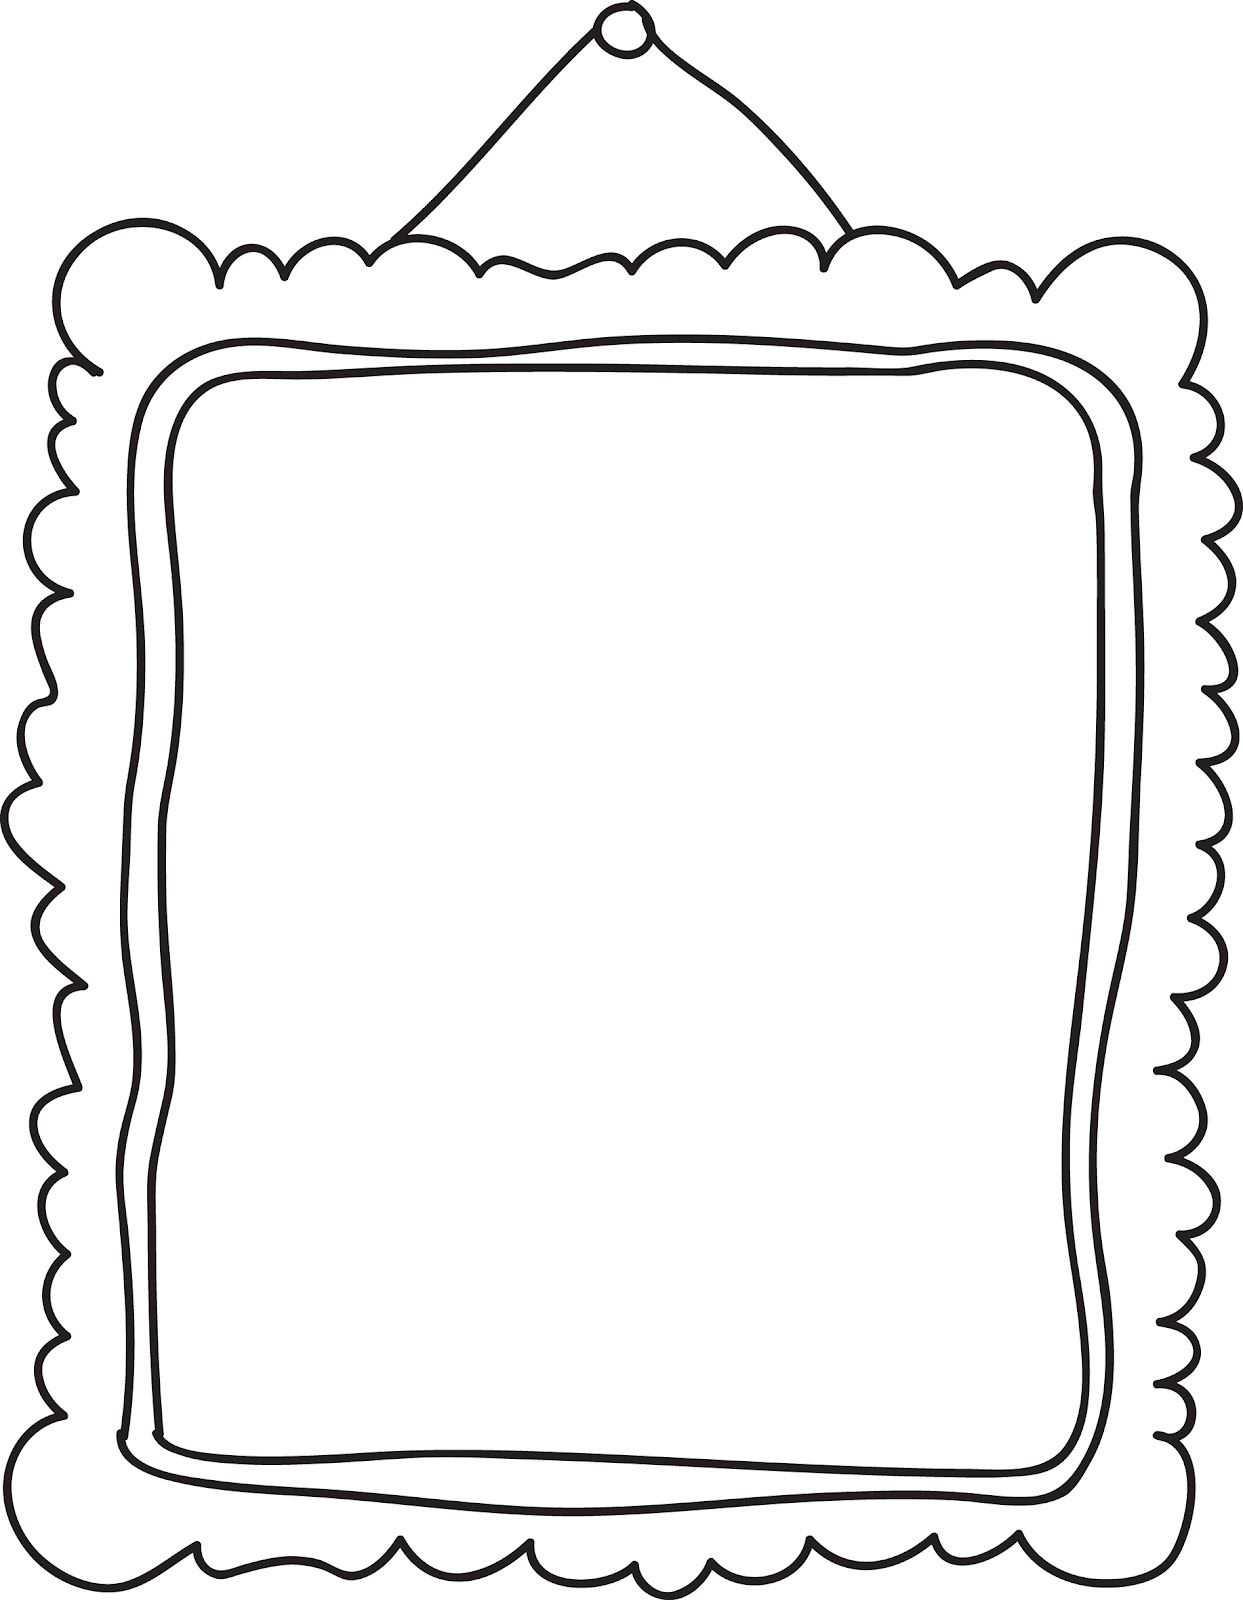 Image Result For Painting Frame Cartoon Black Whiteclip